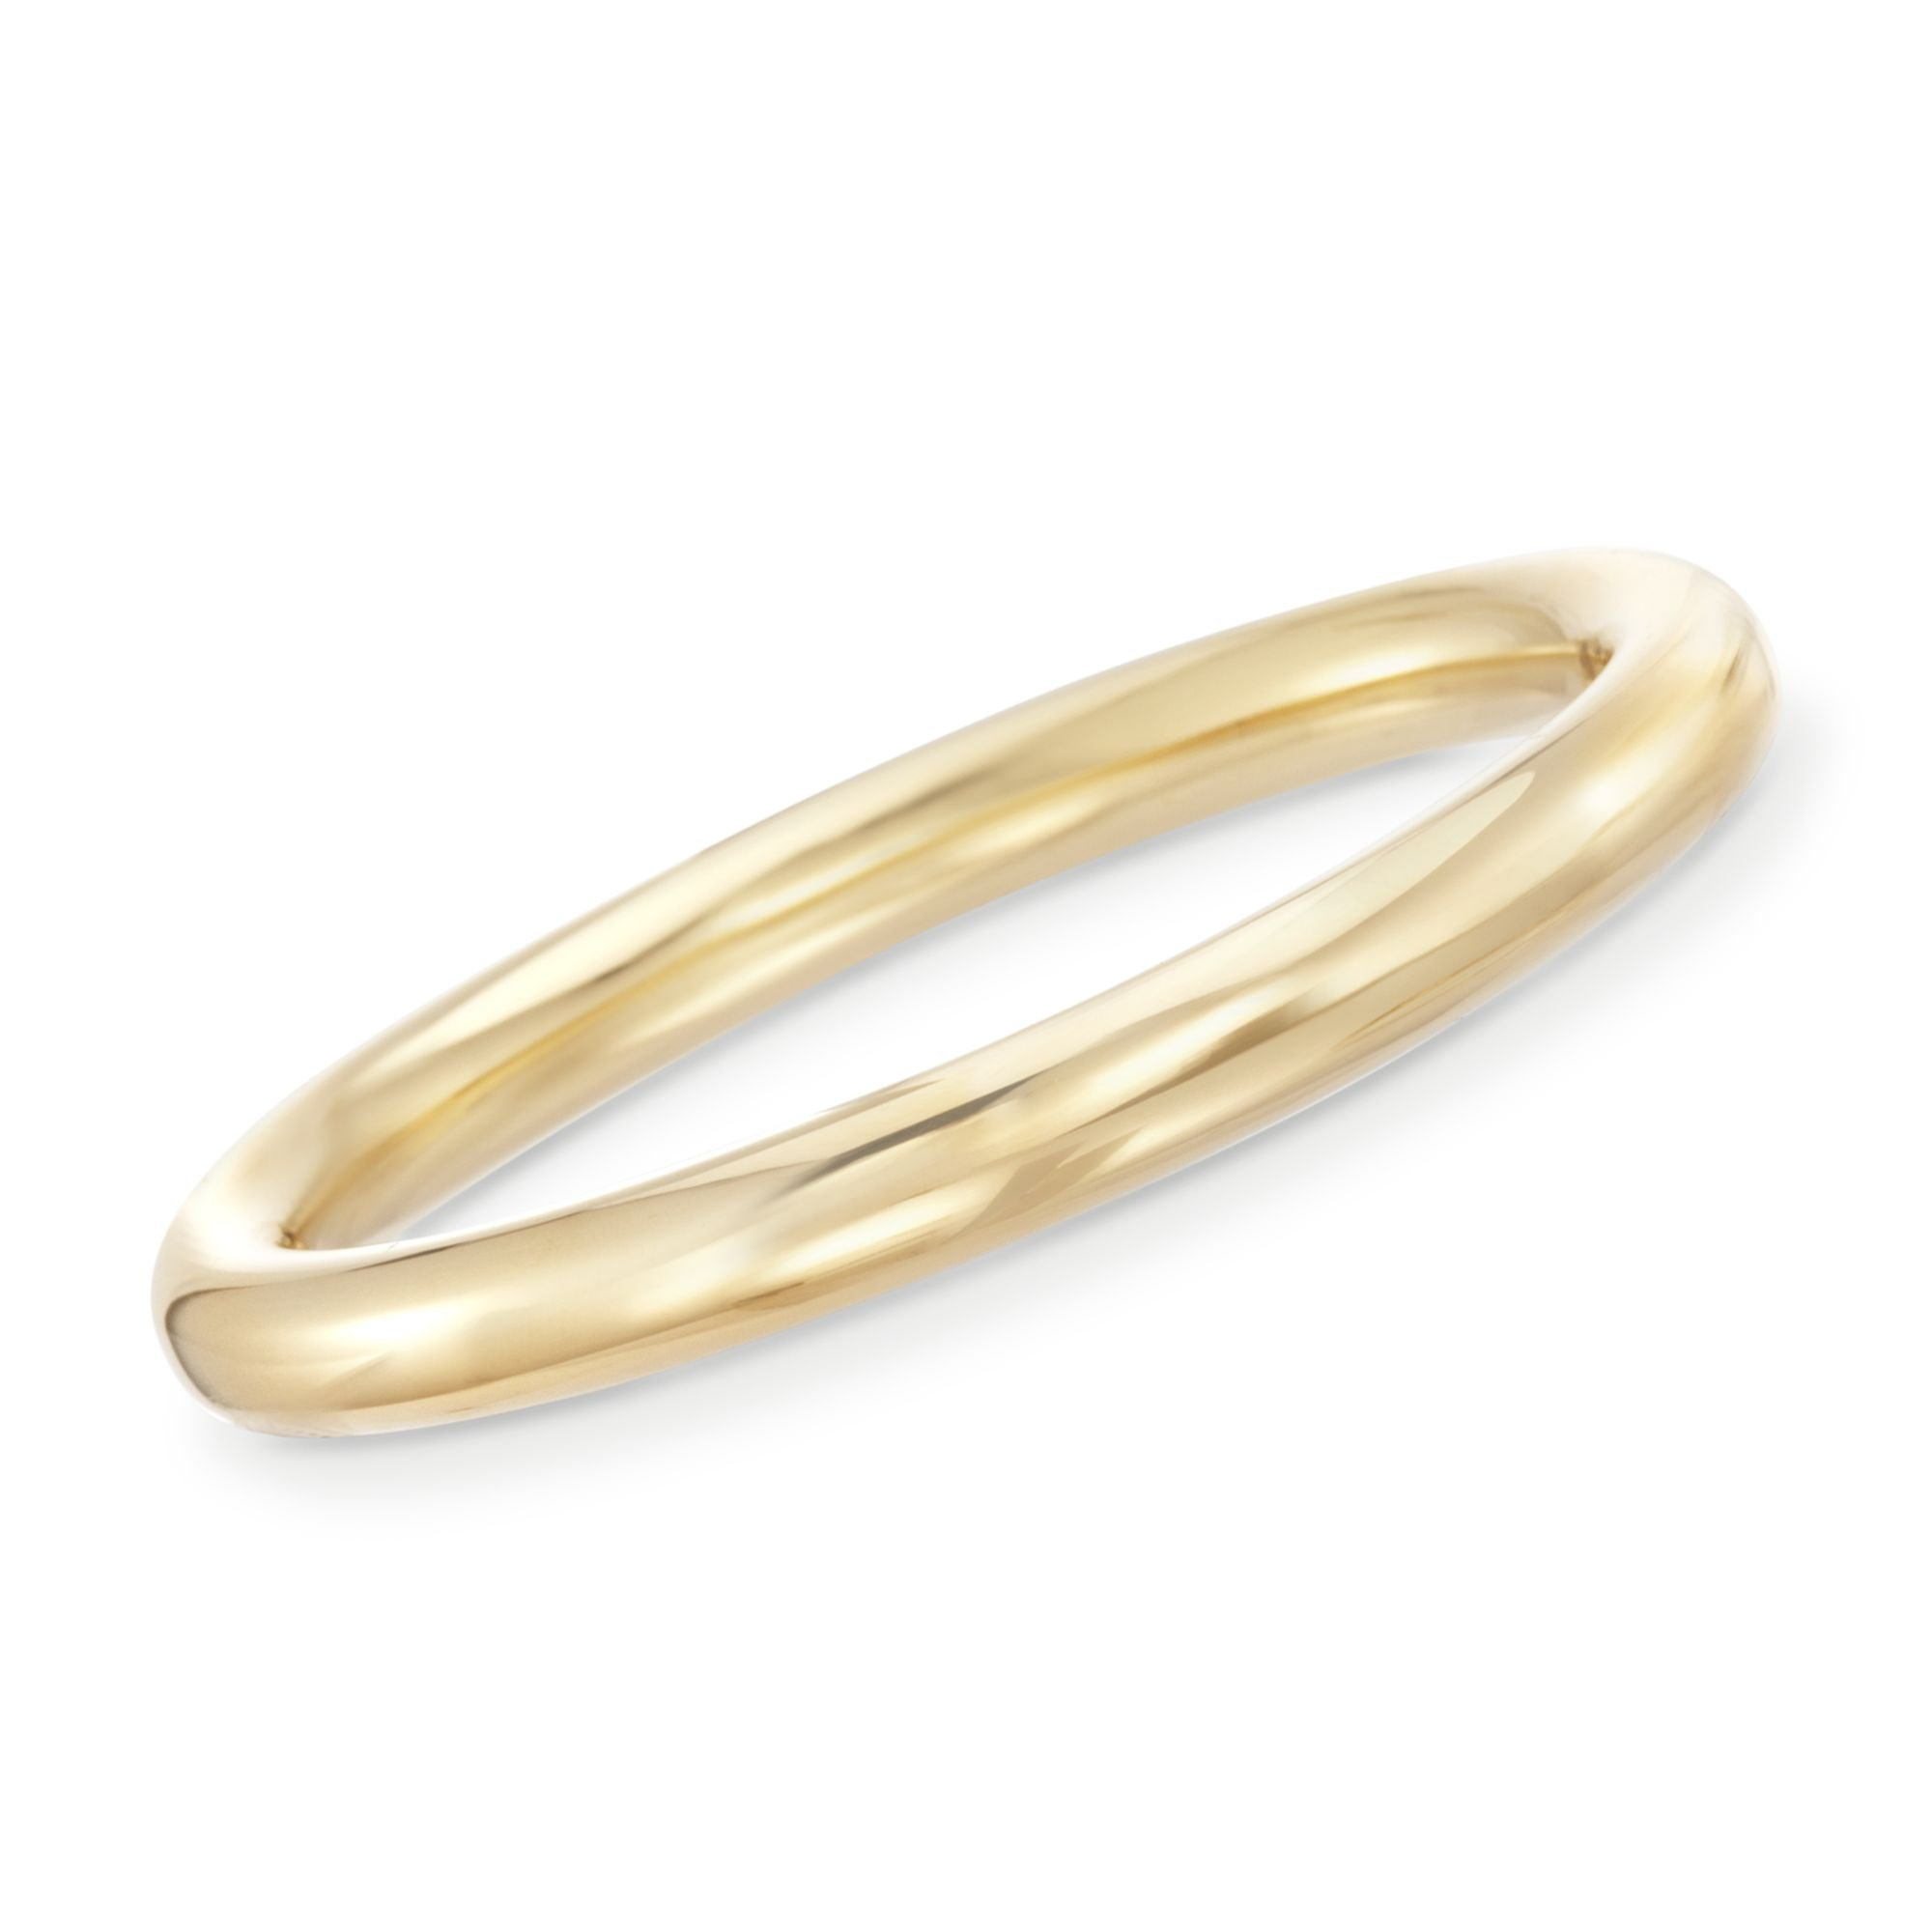 Ross-Simons Certified Italian Andiamo 14kt Yellow Gold Bangle Bracelet